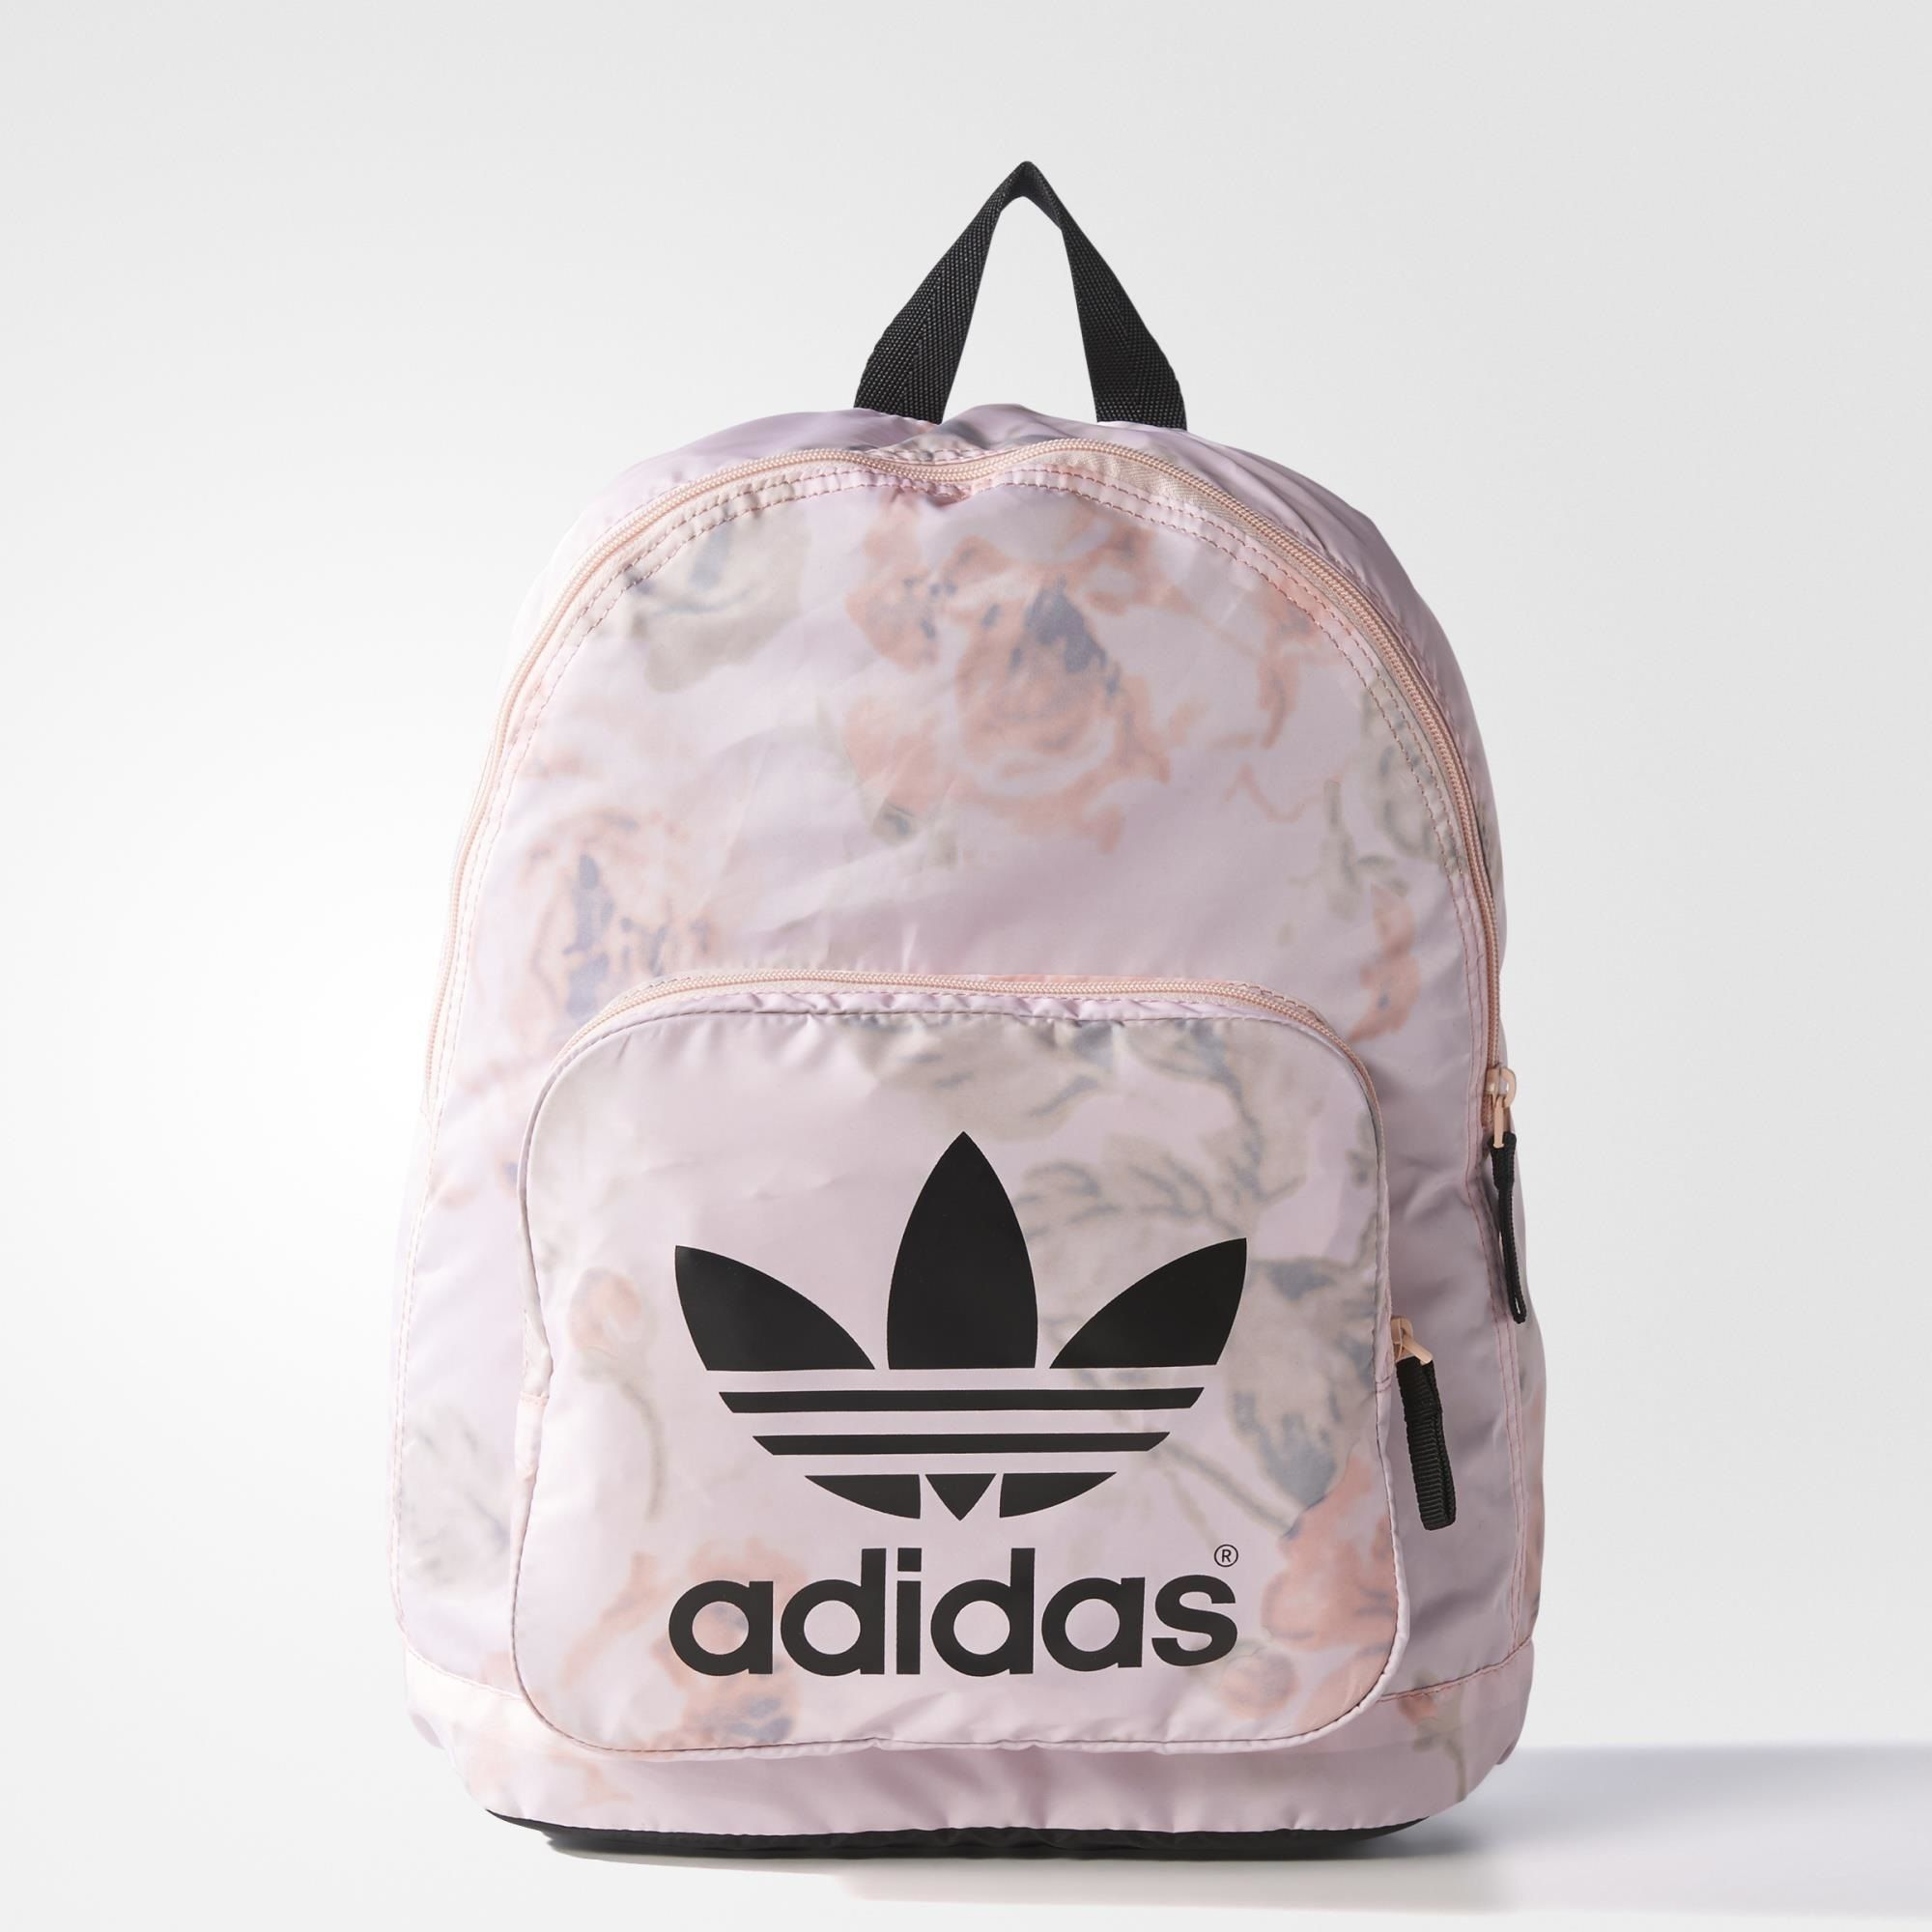 adidas pastel rose light backpack pink adidas sweden bags